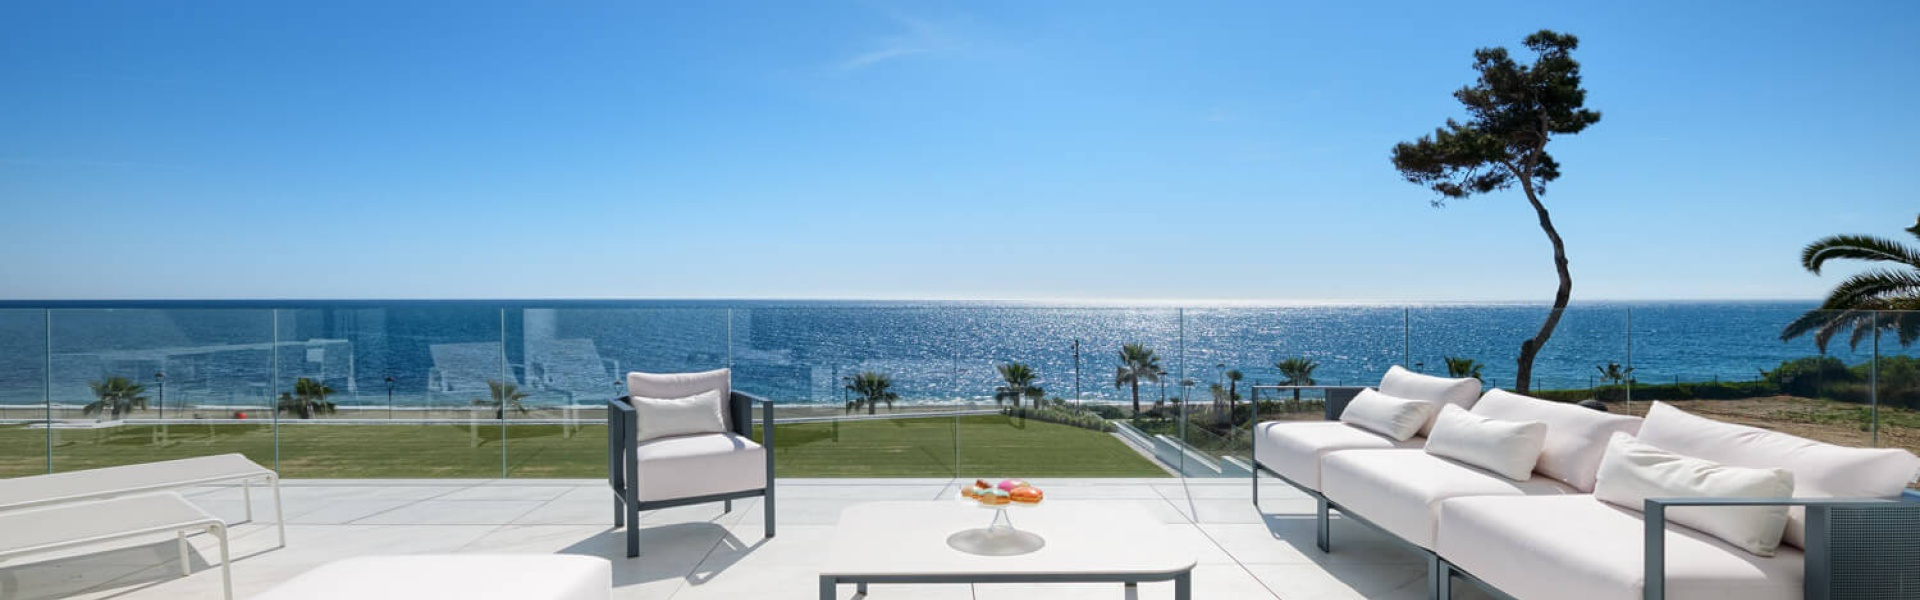 frontline beach, beachside, apartment, for sale, Enare, New Golden Mile, Estepona, Costa del Sol, Spain